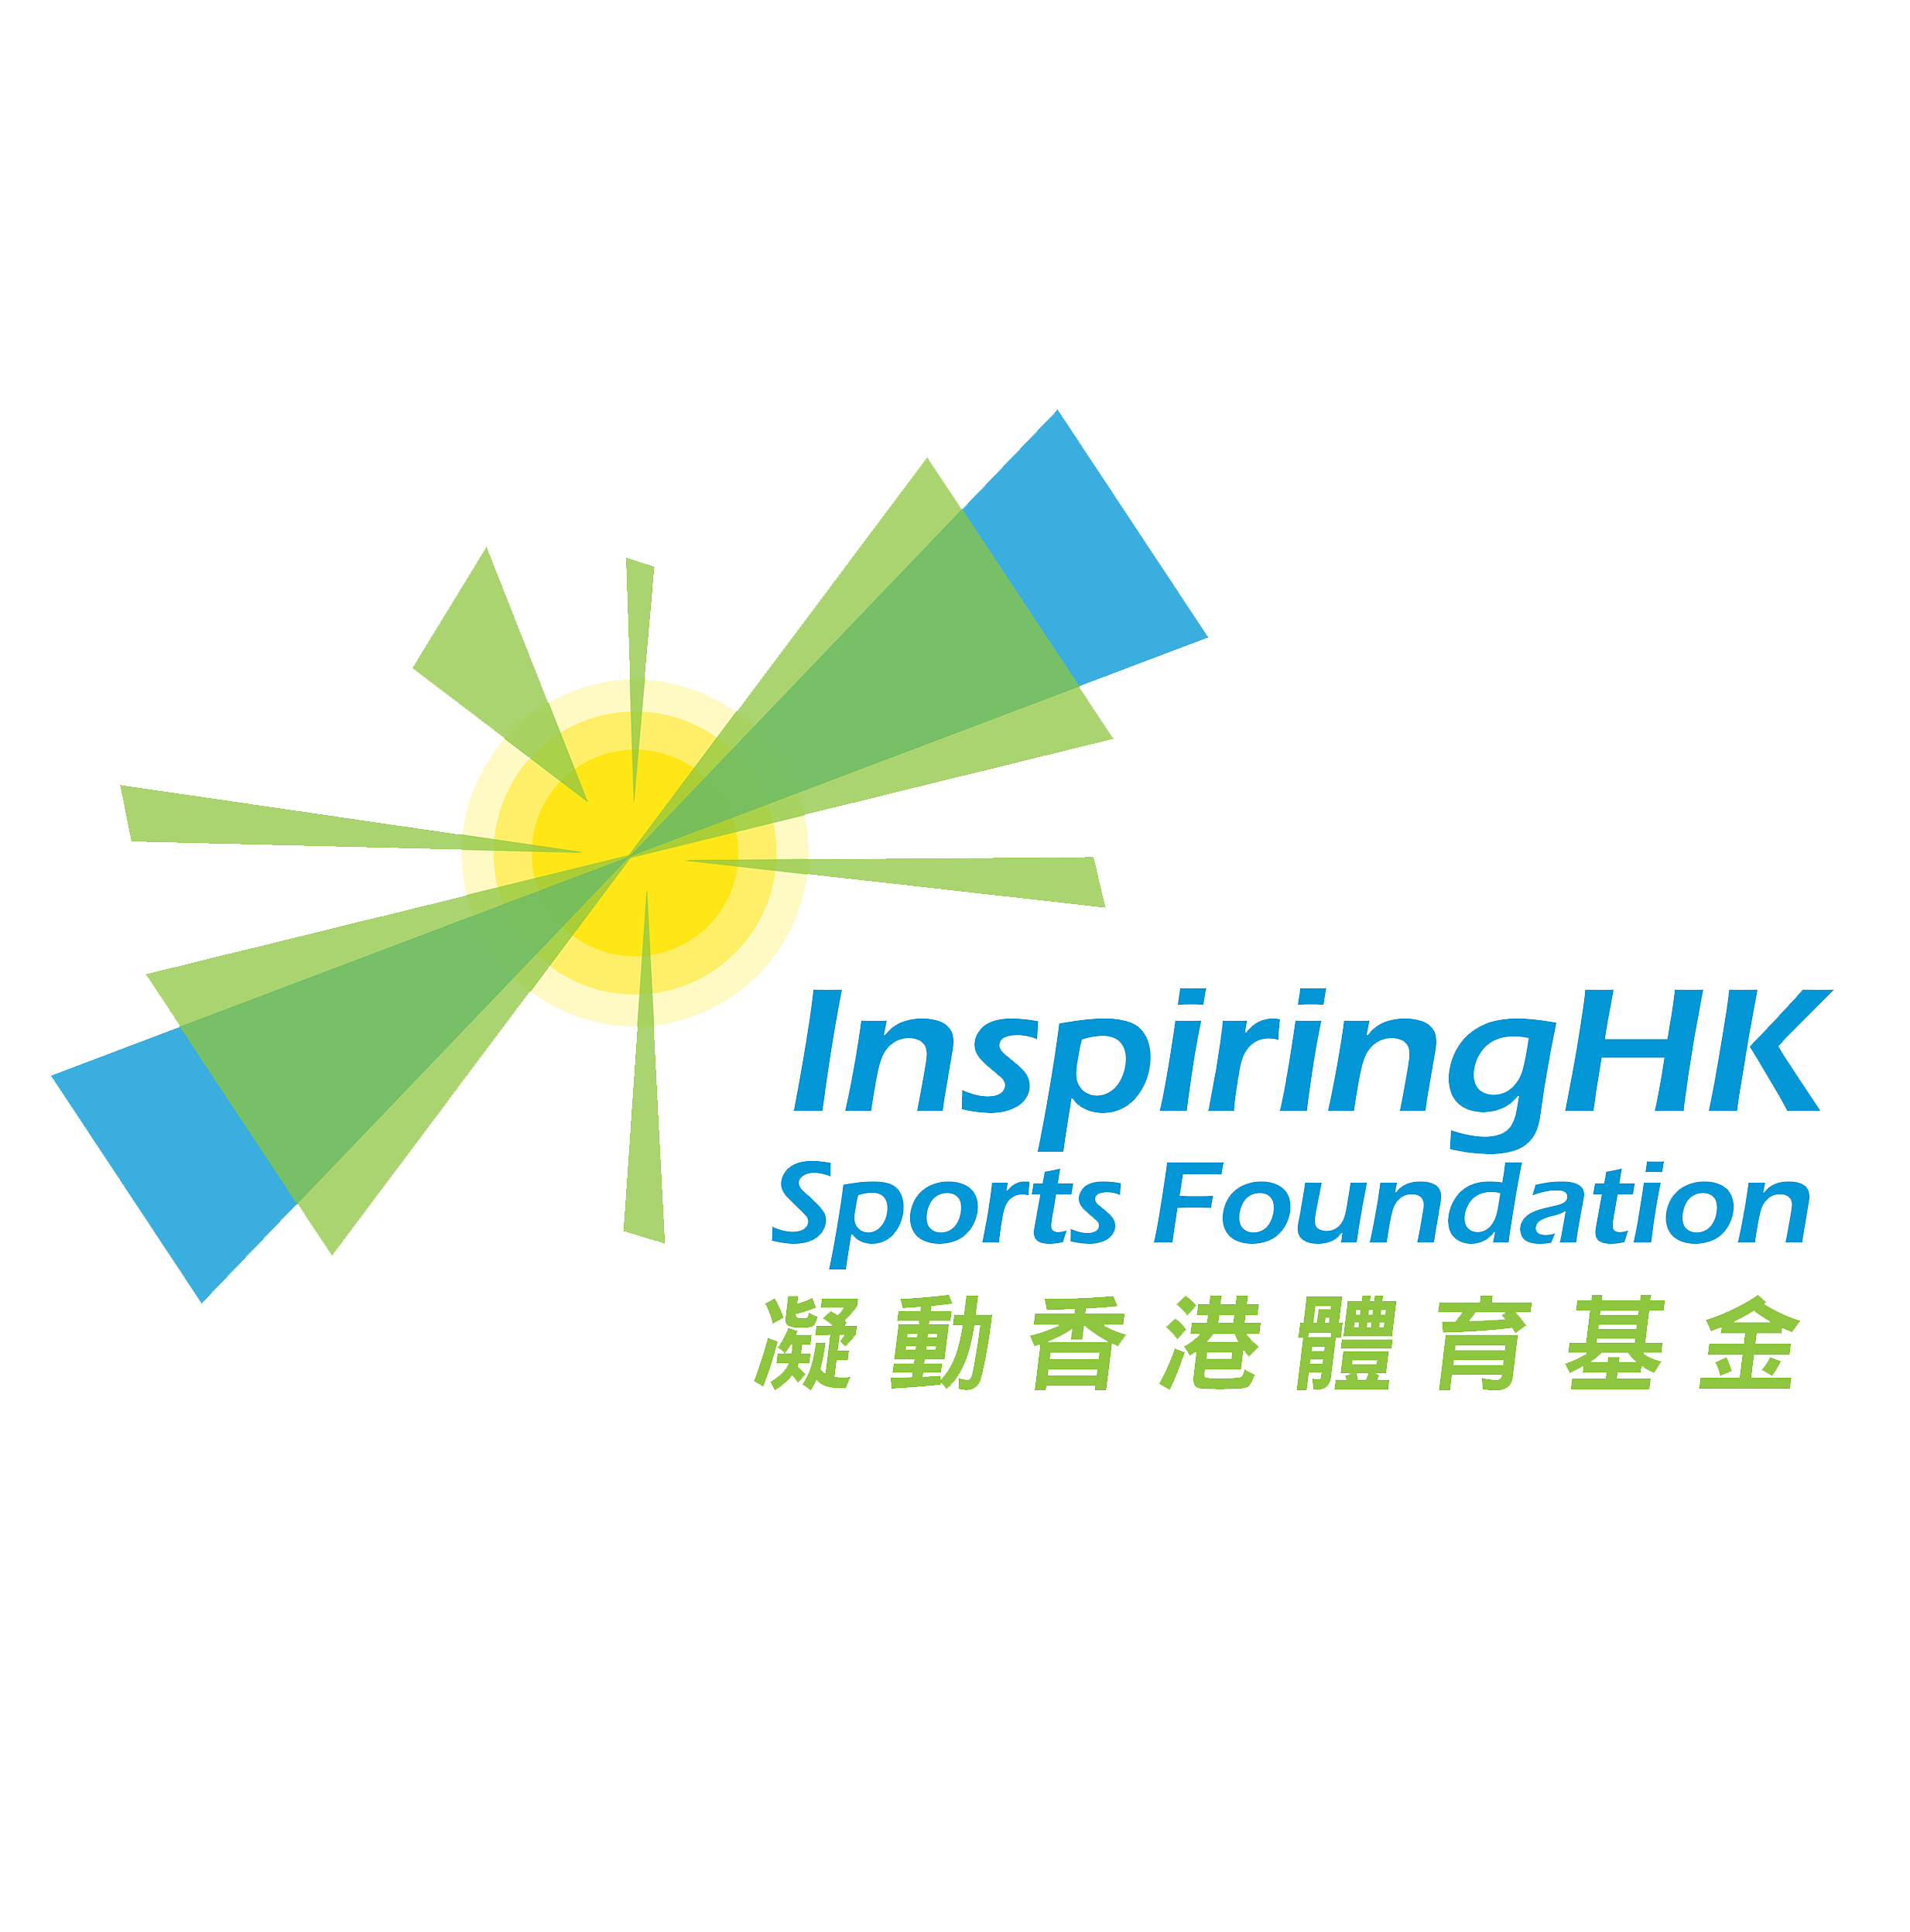 InspiringHK Sports Foundation